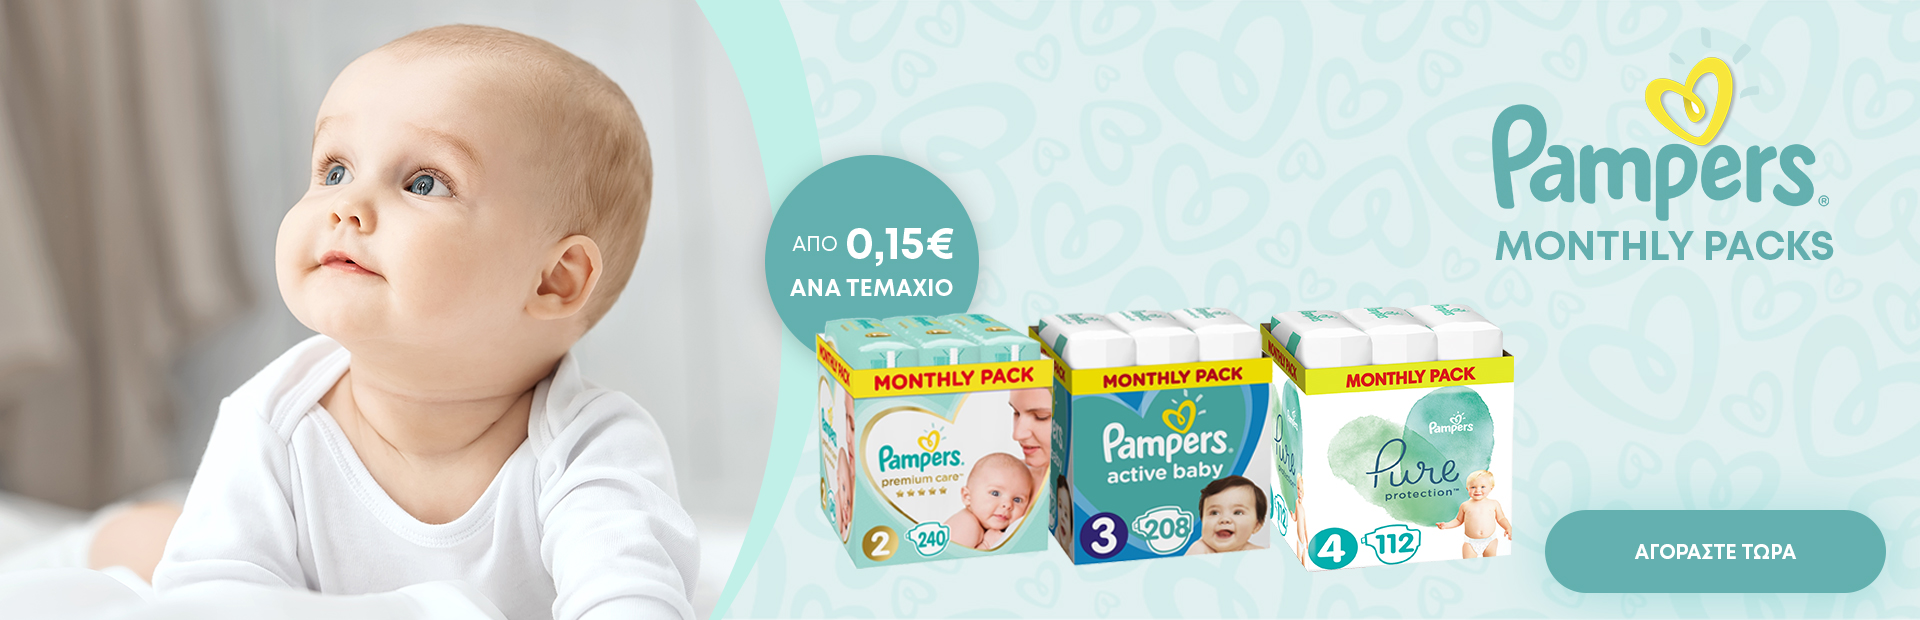 Pampers monthly yearly